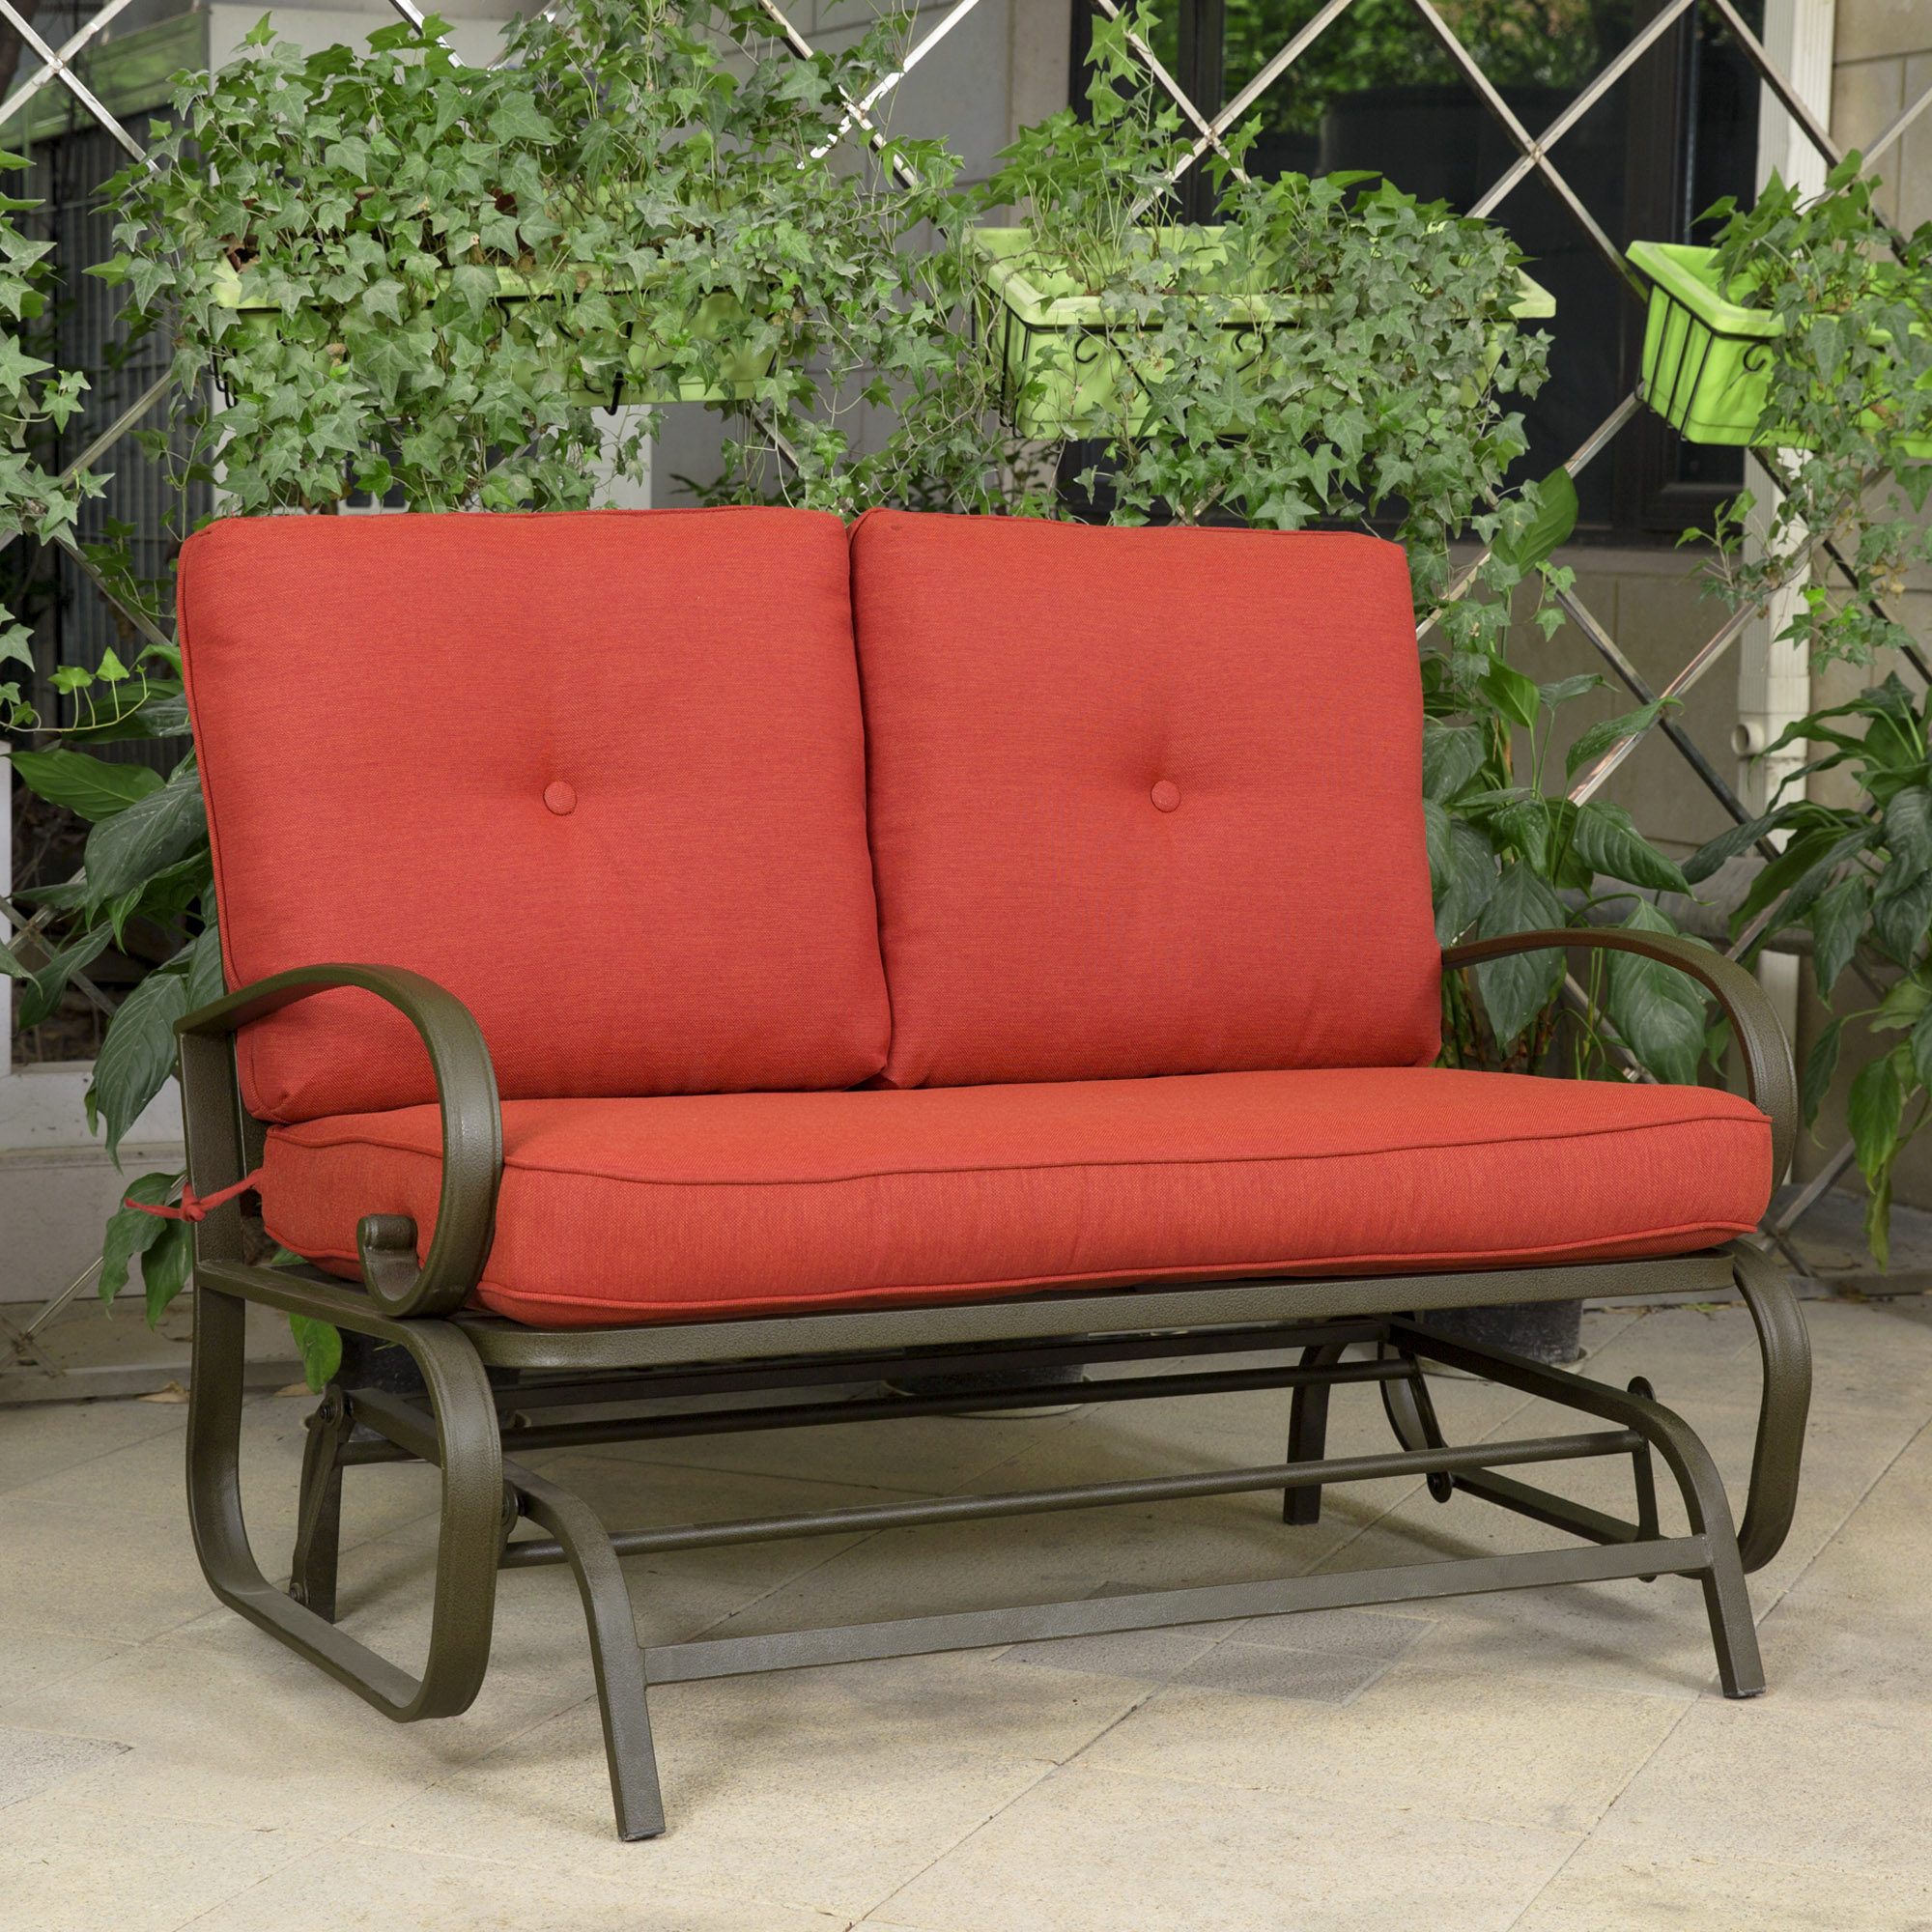 cloud mountain patio glider bench outdoor cushioed 2 person swing loveseat FOCGCOL